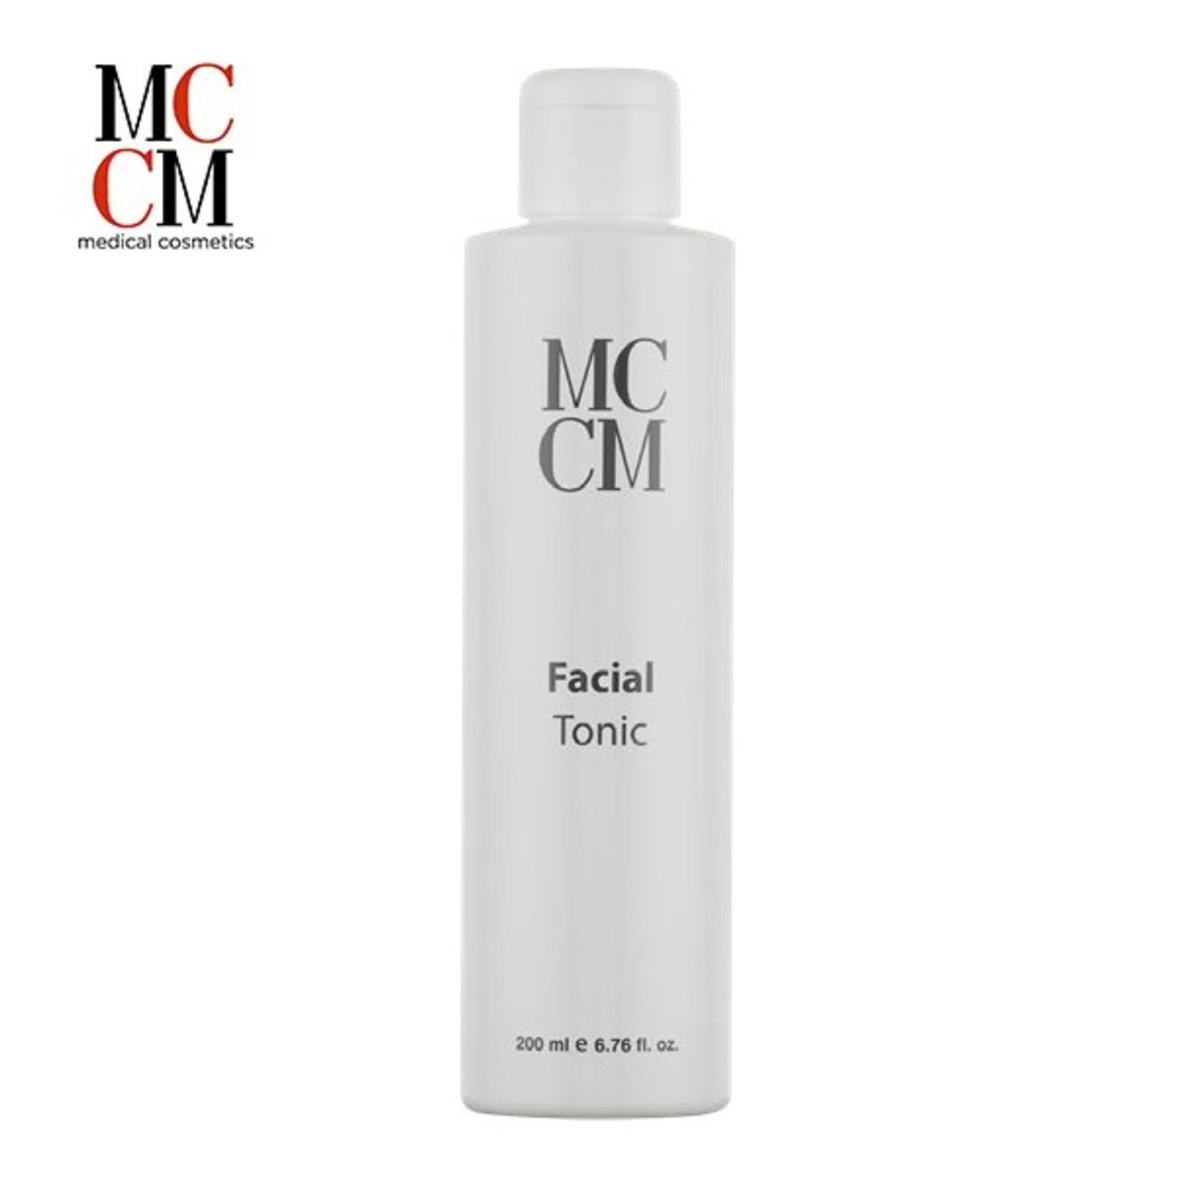 (SPAIN) Facial Tonic 200ml